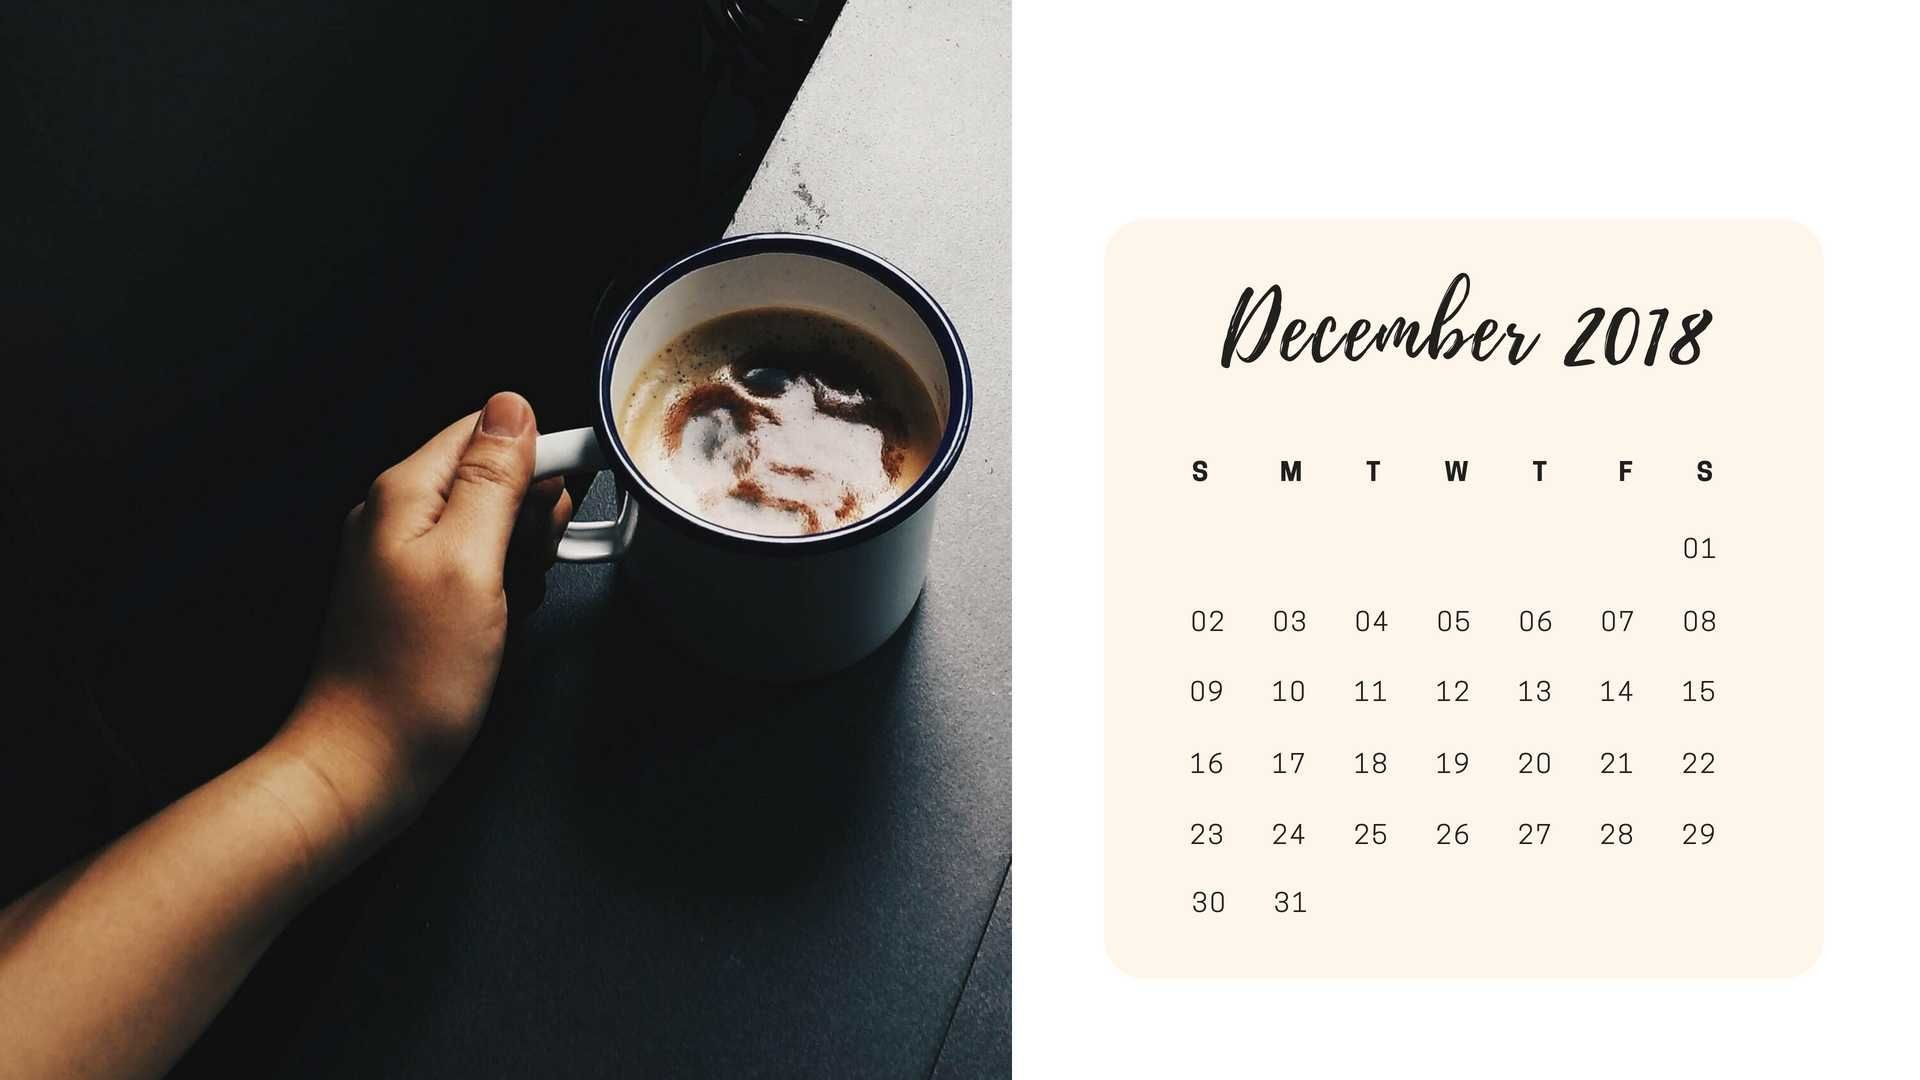 Desktop Wallpapers Calendar December 2018 74 Background Pictures